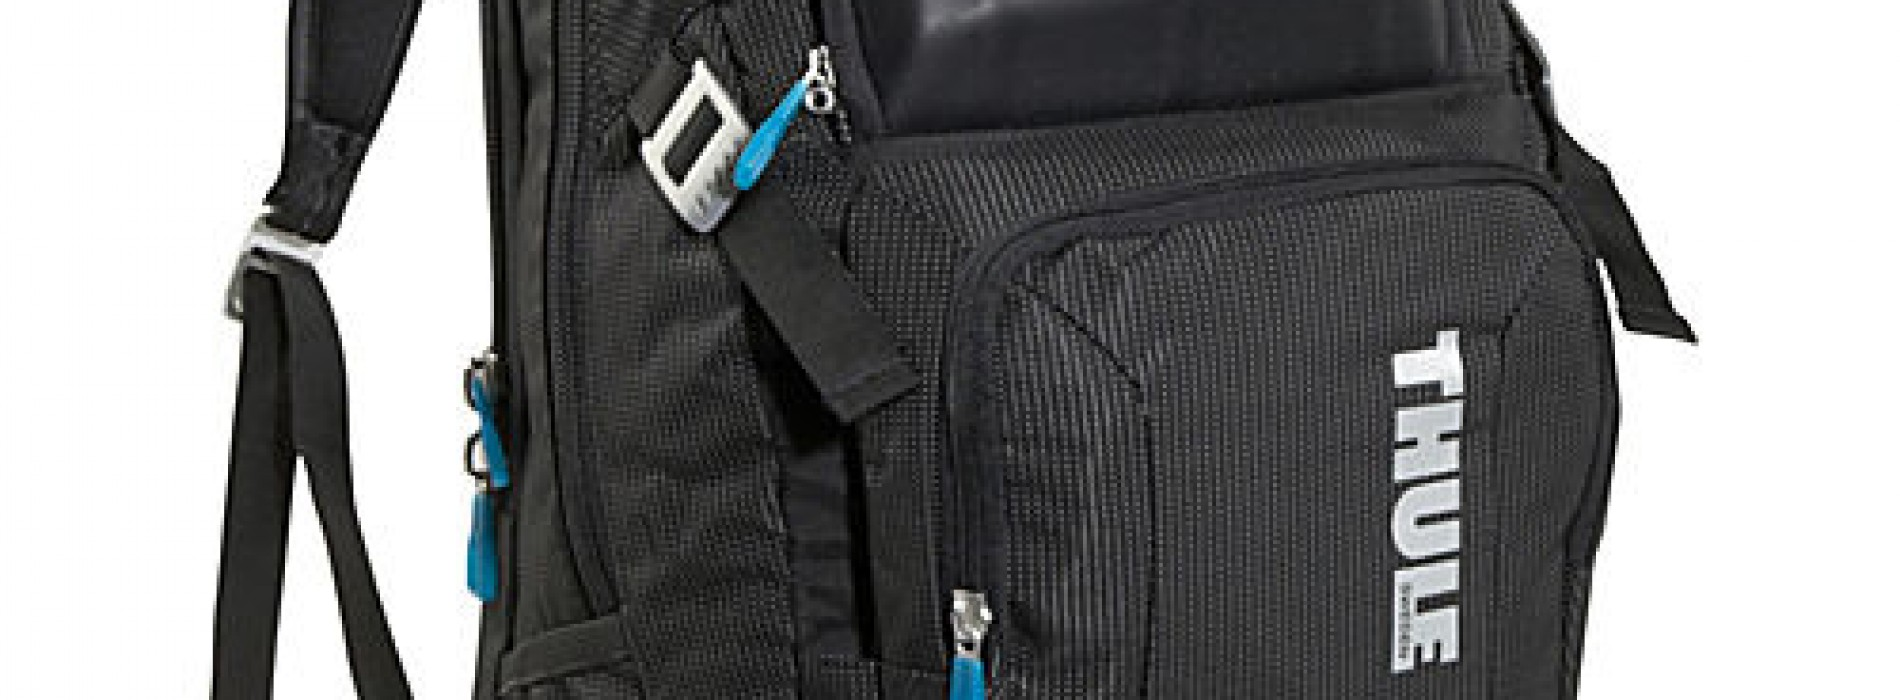 Thule Crossover 32L Backpack review